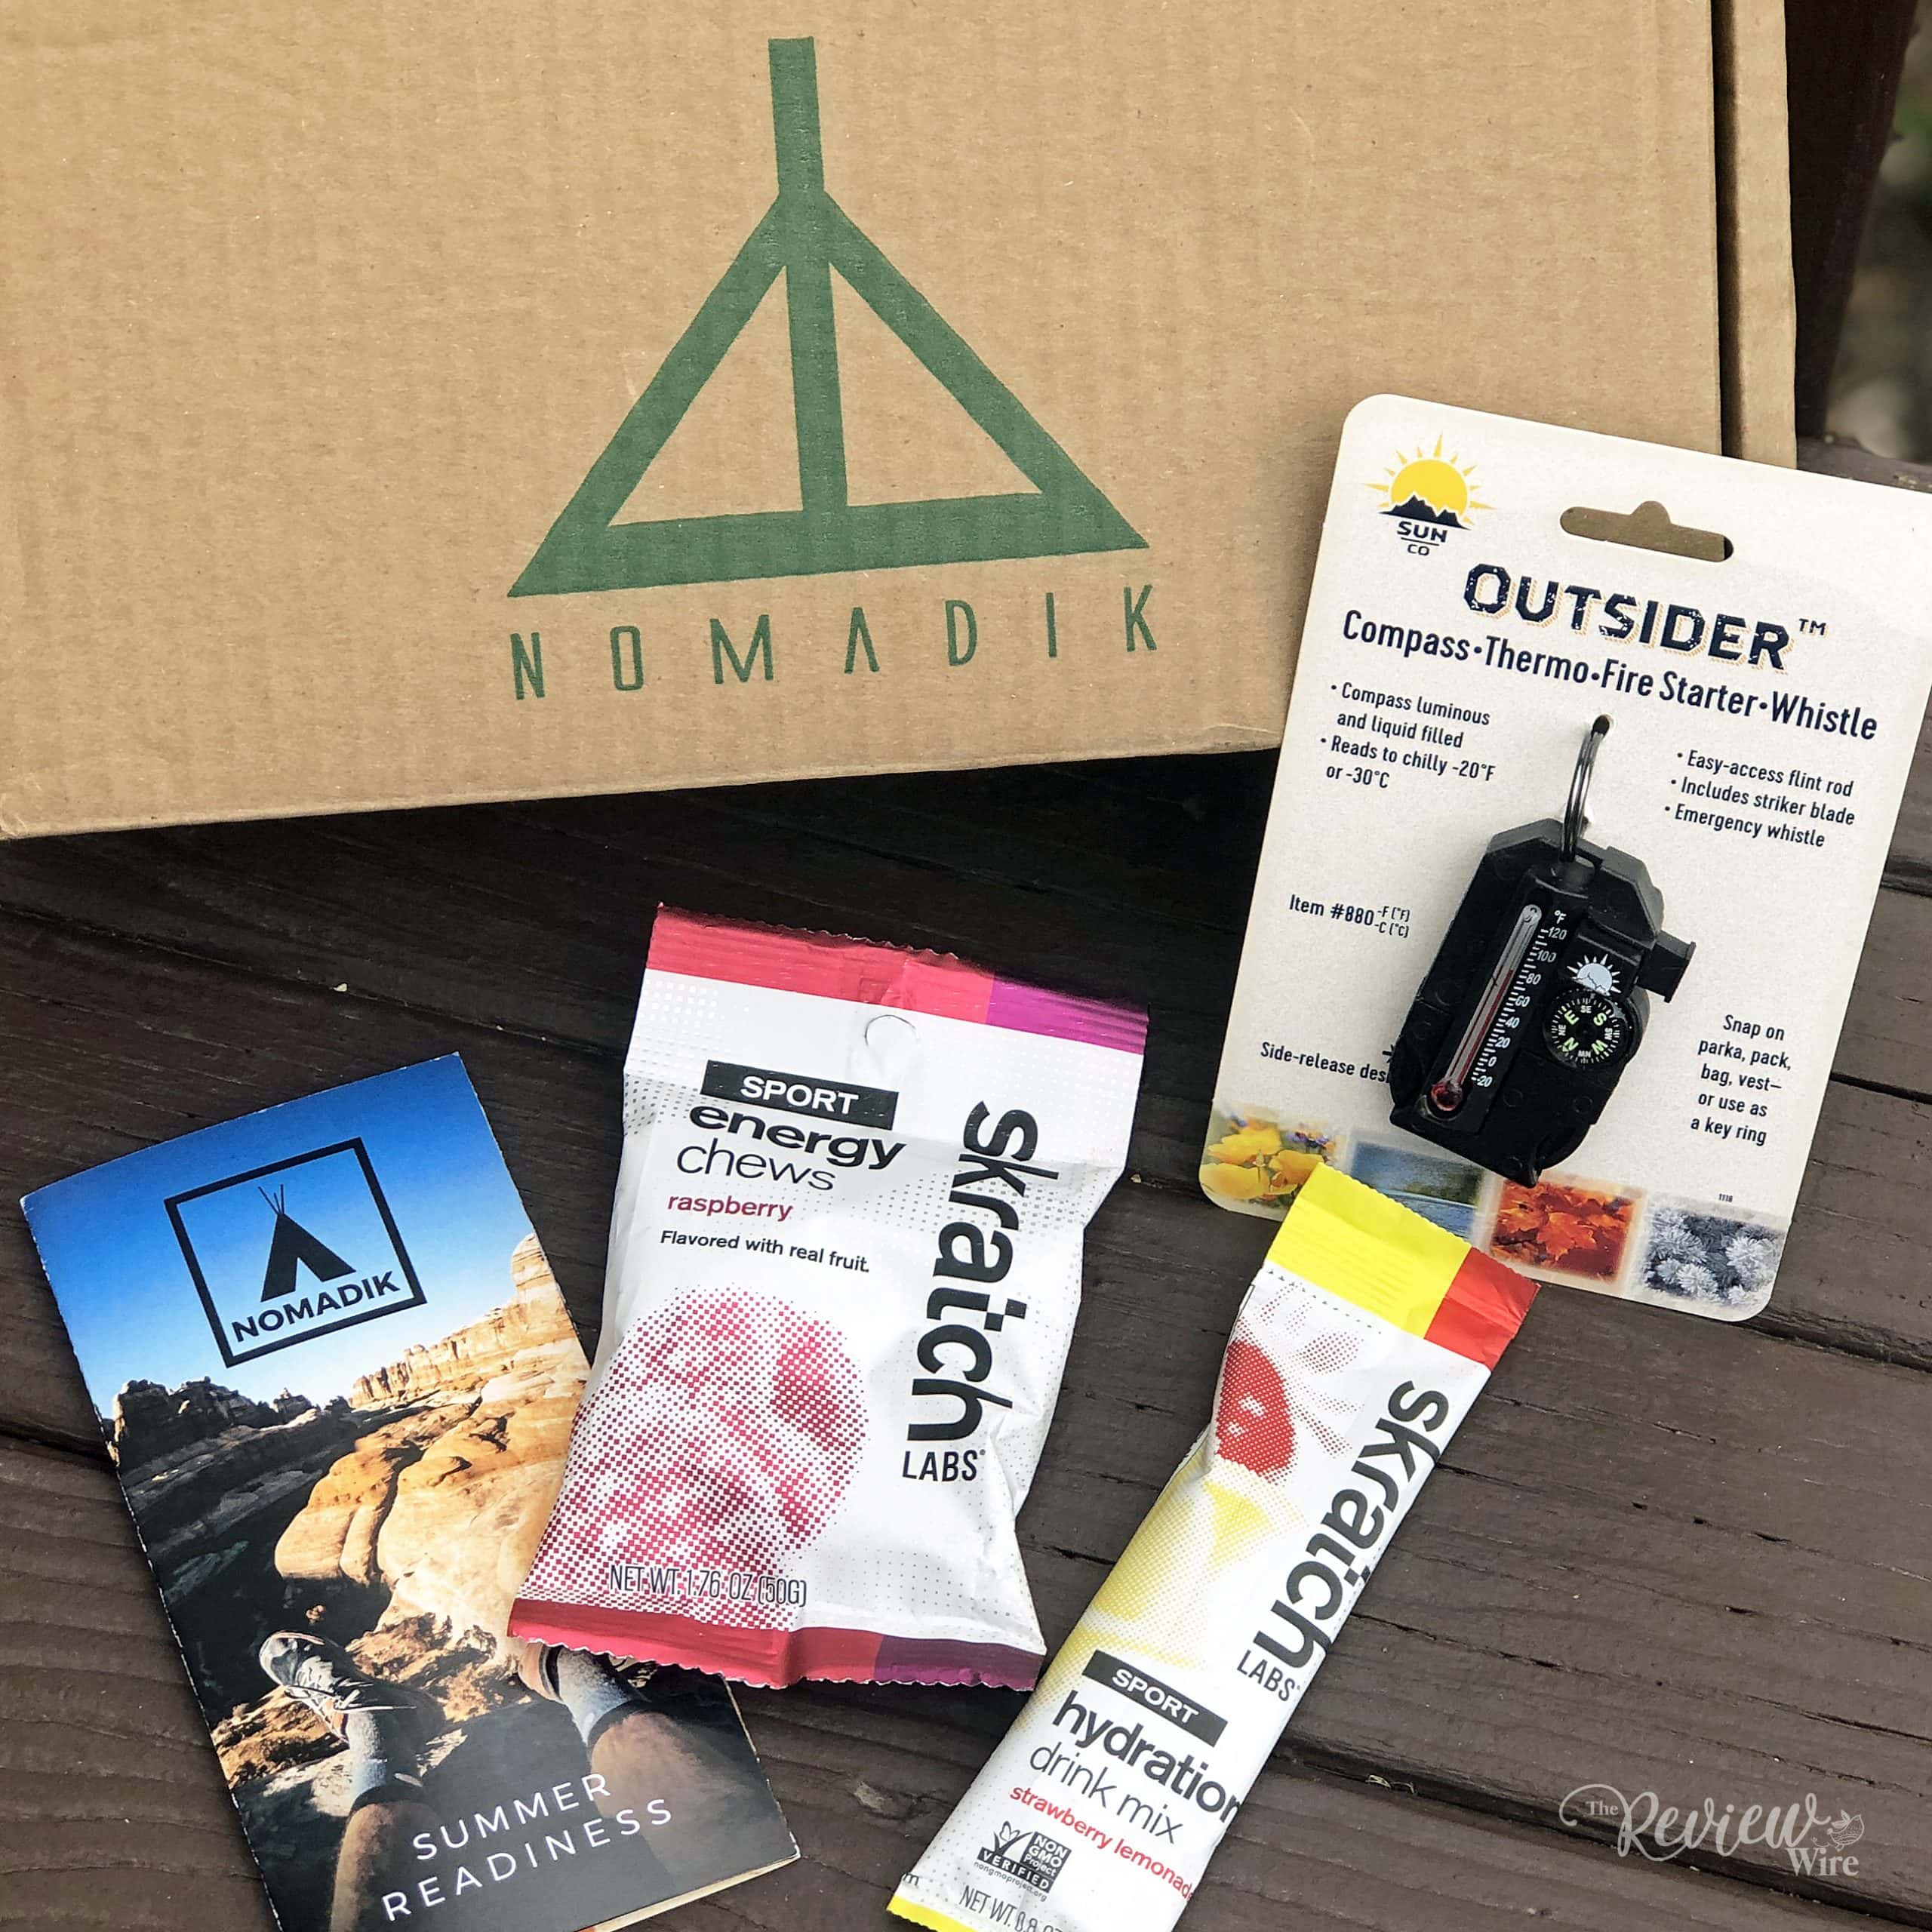 The Review Wire - The Nomadik - Skratch Labs